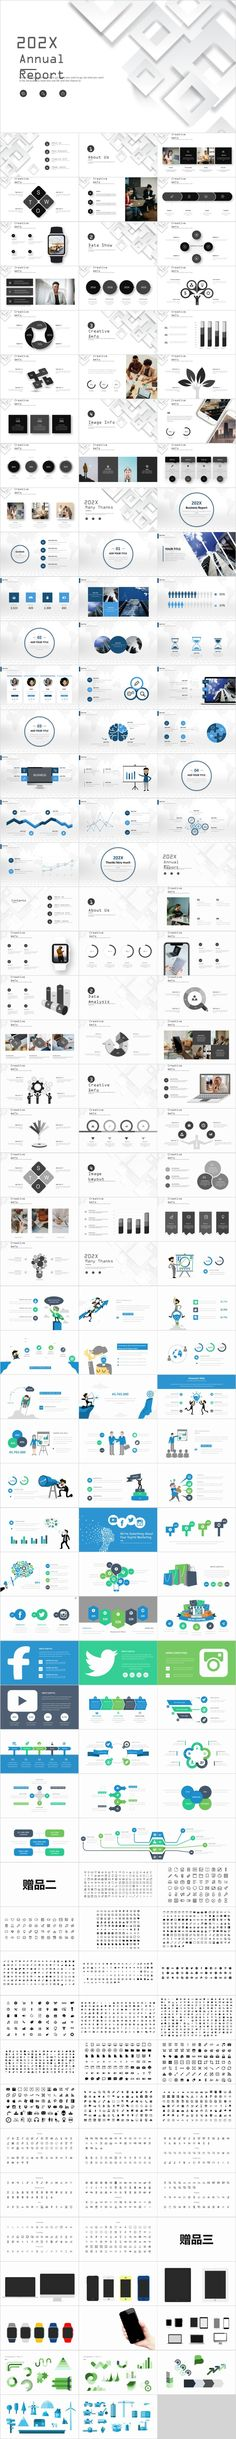 3 in 1 Flexible versatile PowerPoint – The highest quality PowerPoint Templates and Keynote Templates download Presentation Software, Powerpoint Presentation Templates, Keynote Template, Presentation Design, Great Powerpoint Presentations, Professional Powerpoint Templates, Creative Powerpoint Templates, What Is An Infographic, Creative Infographic